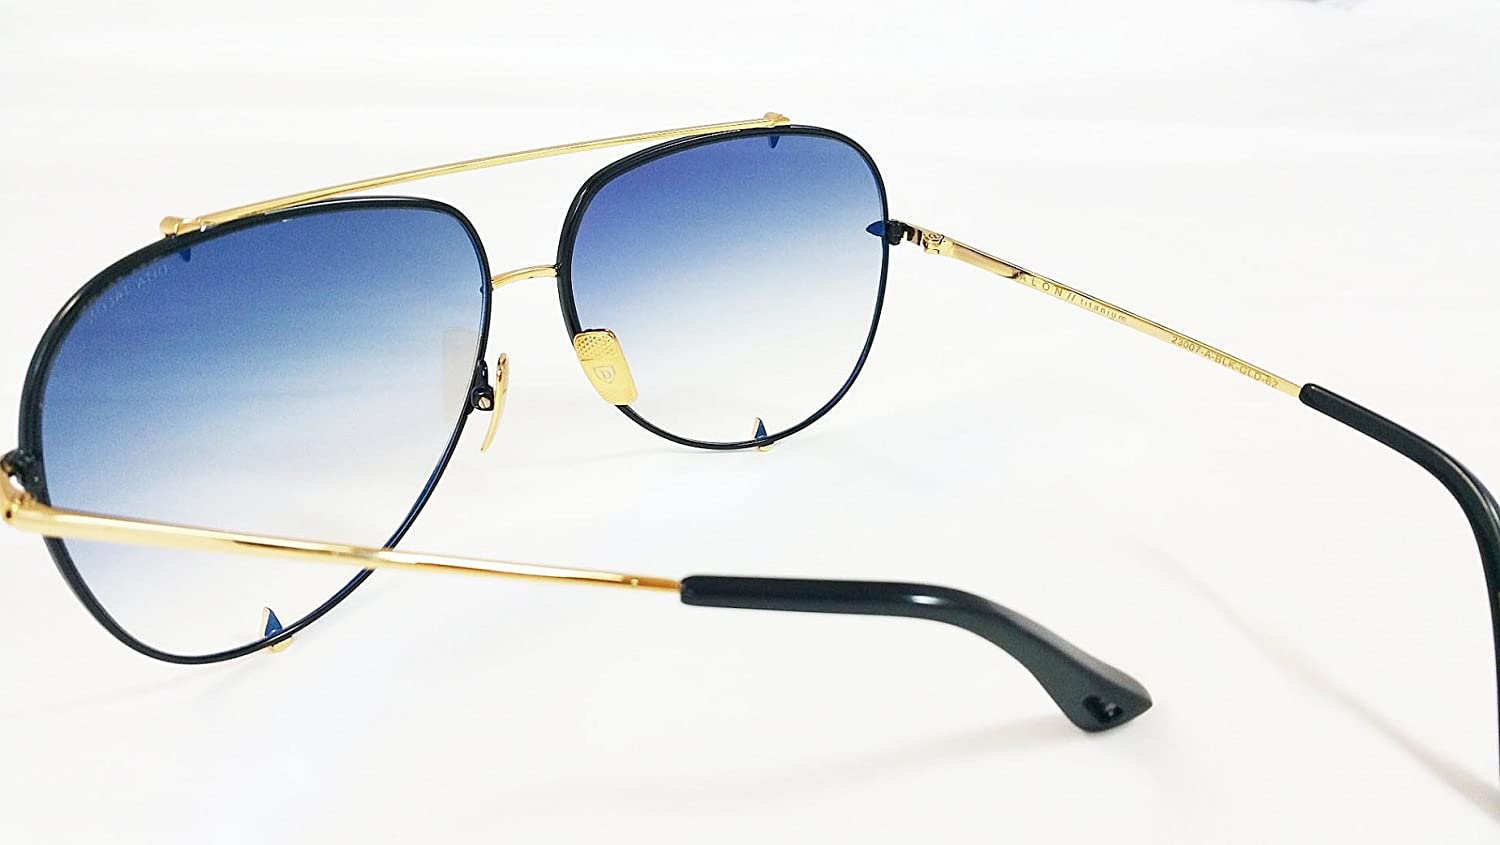 ac319eb7ab5 Dita Talon Aviator Sunglasses 23007 in Gold and Black frame with Grey Lens   Amazon.co.uk  Clothing